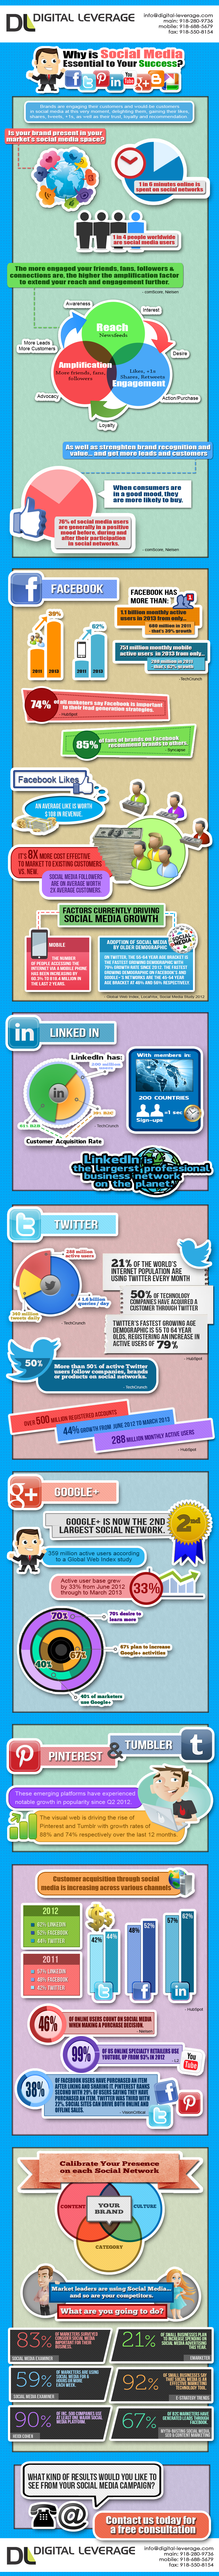 Digital-Leverage.com-Social-Media-Optimization-Infographics-2013